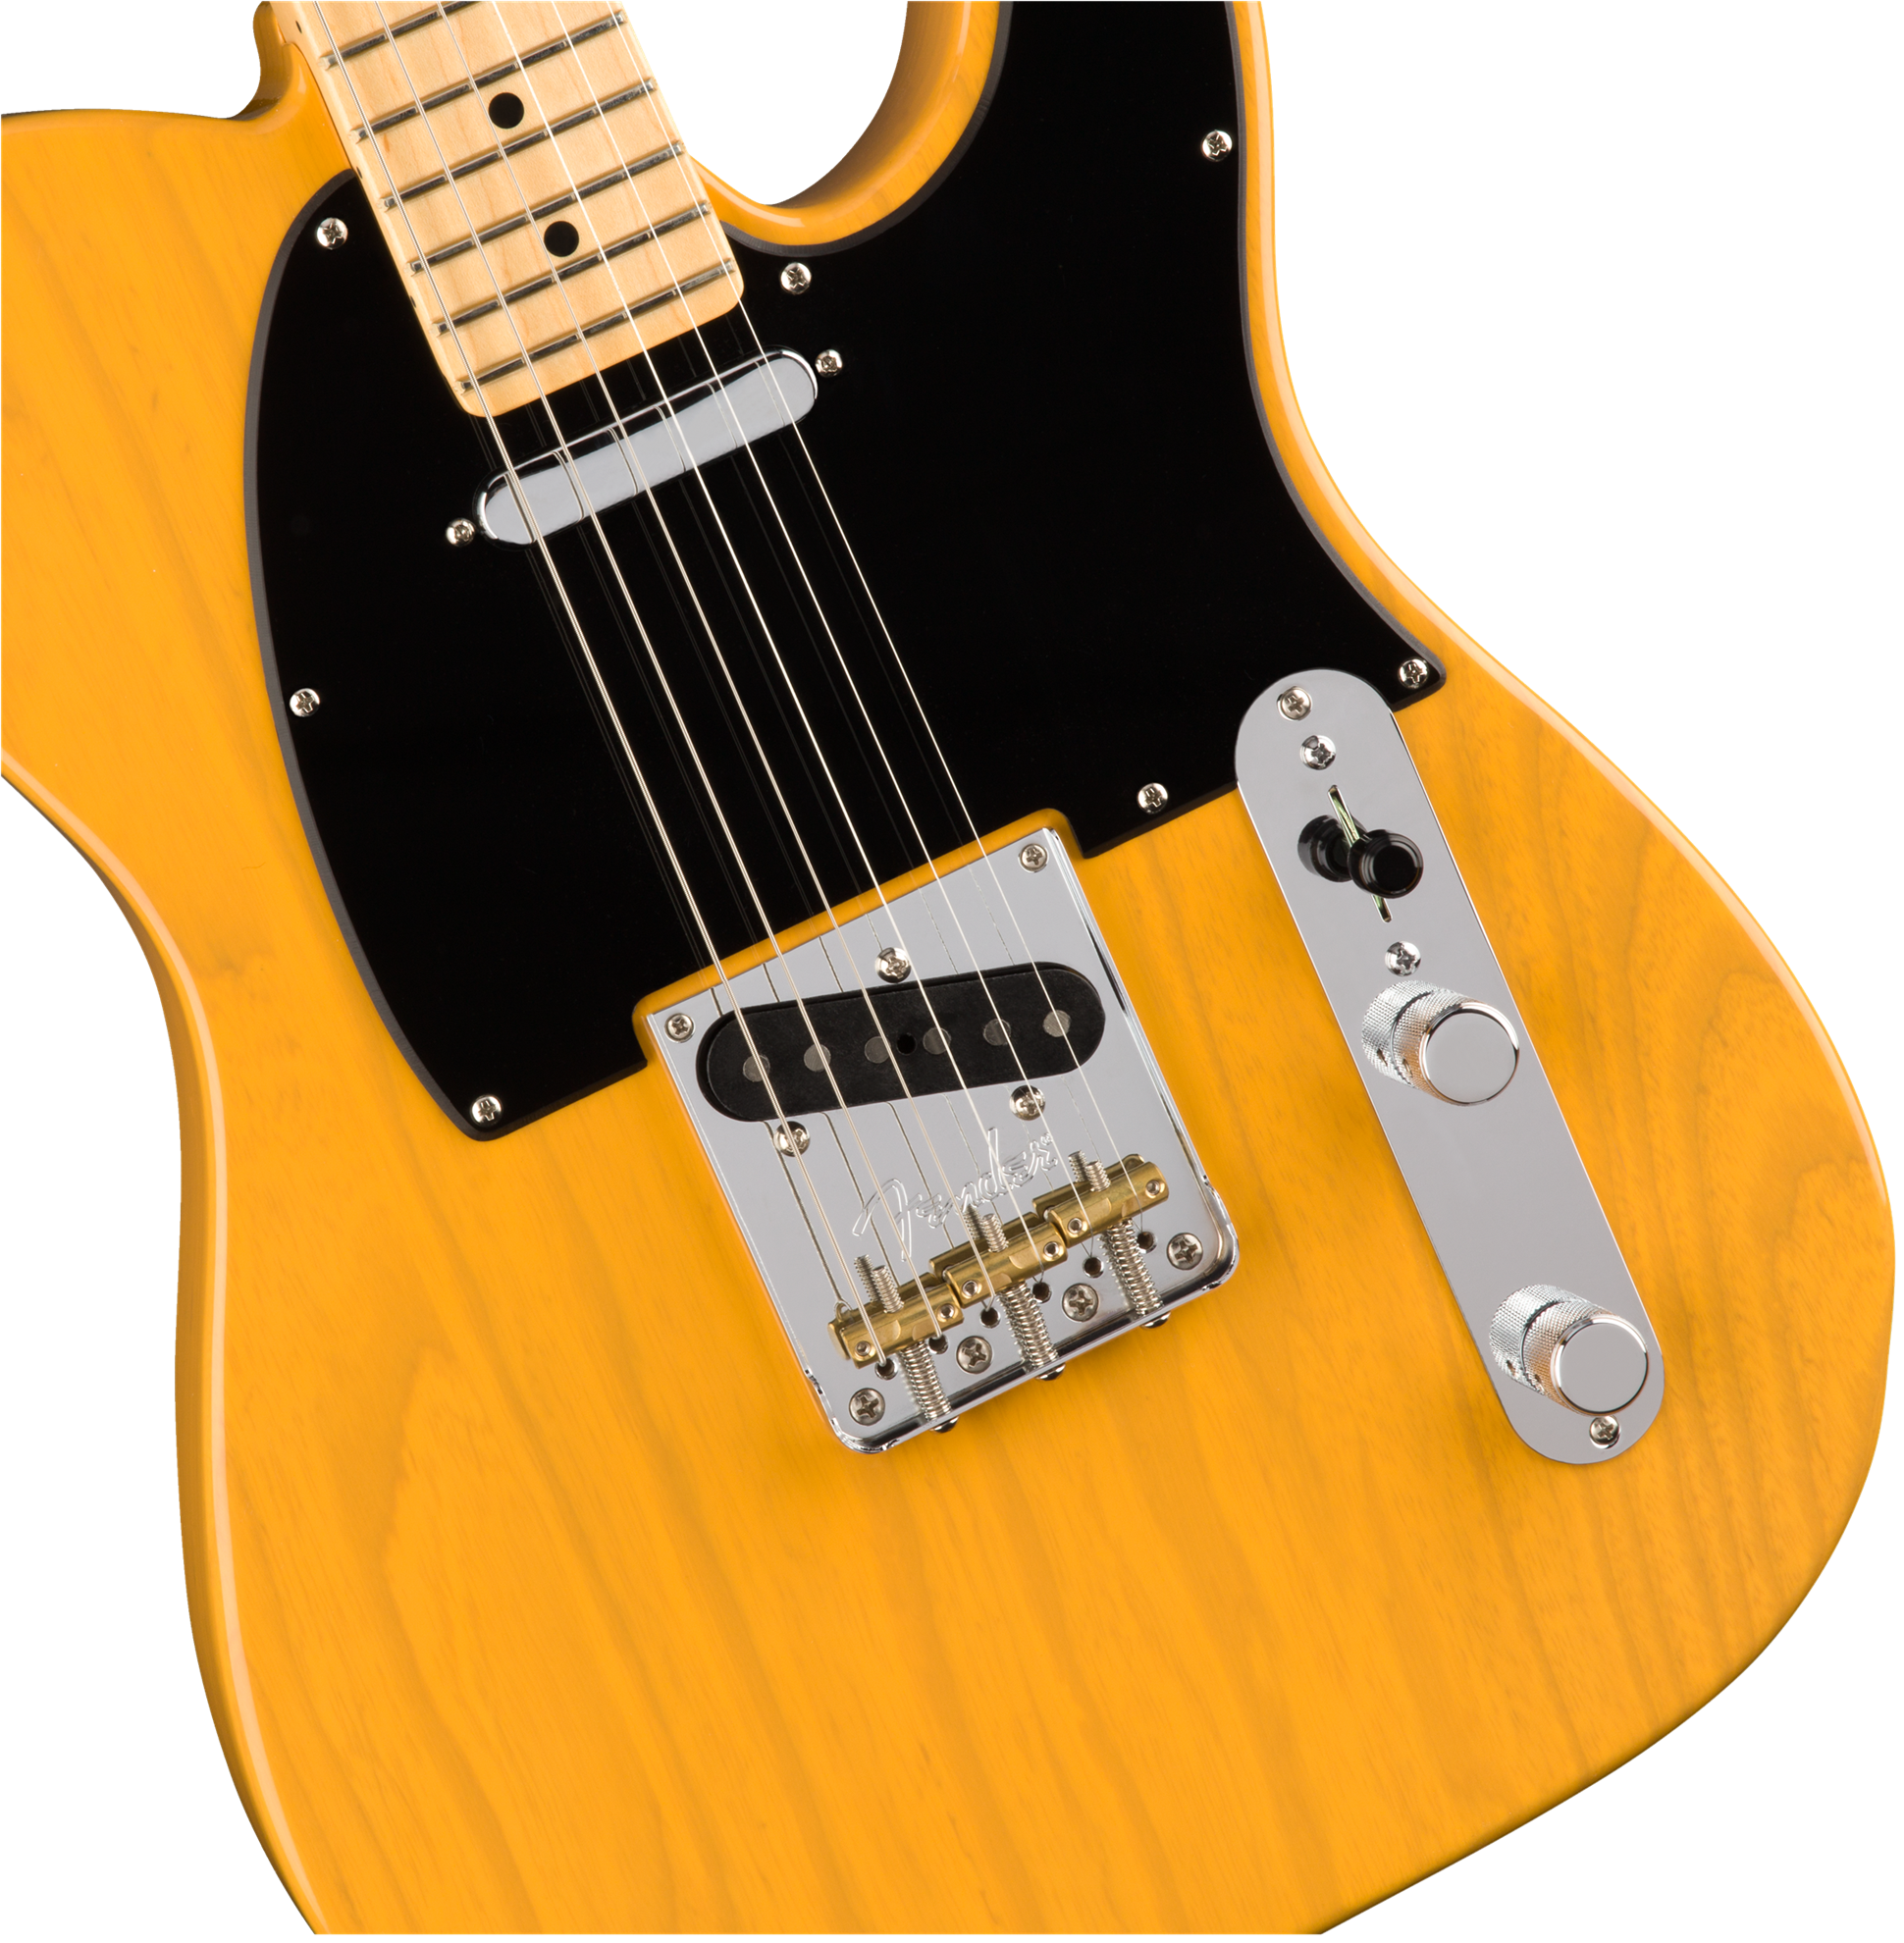 Fender American Professional Telecaster Electric Guitar - Maple Neck - Butterscotch Blonde